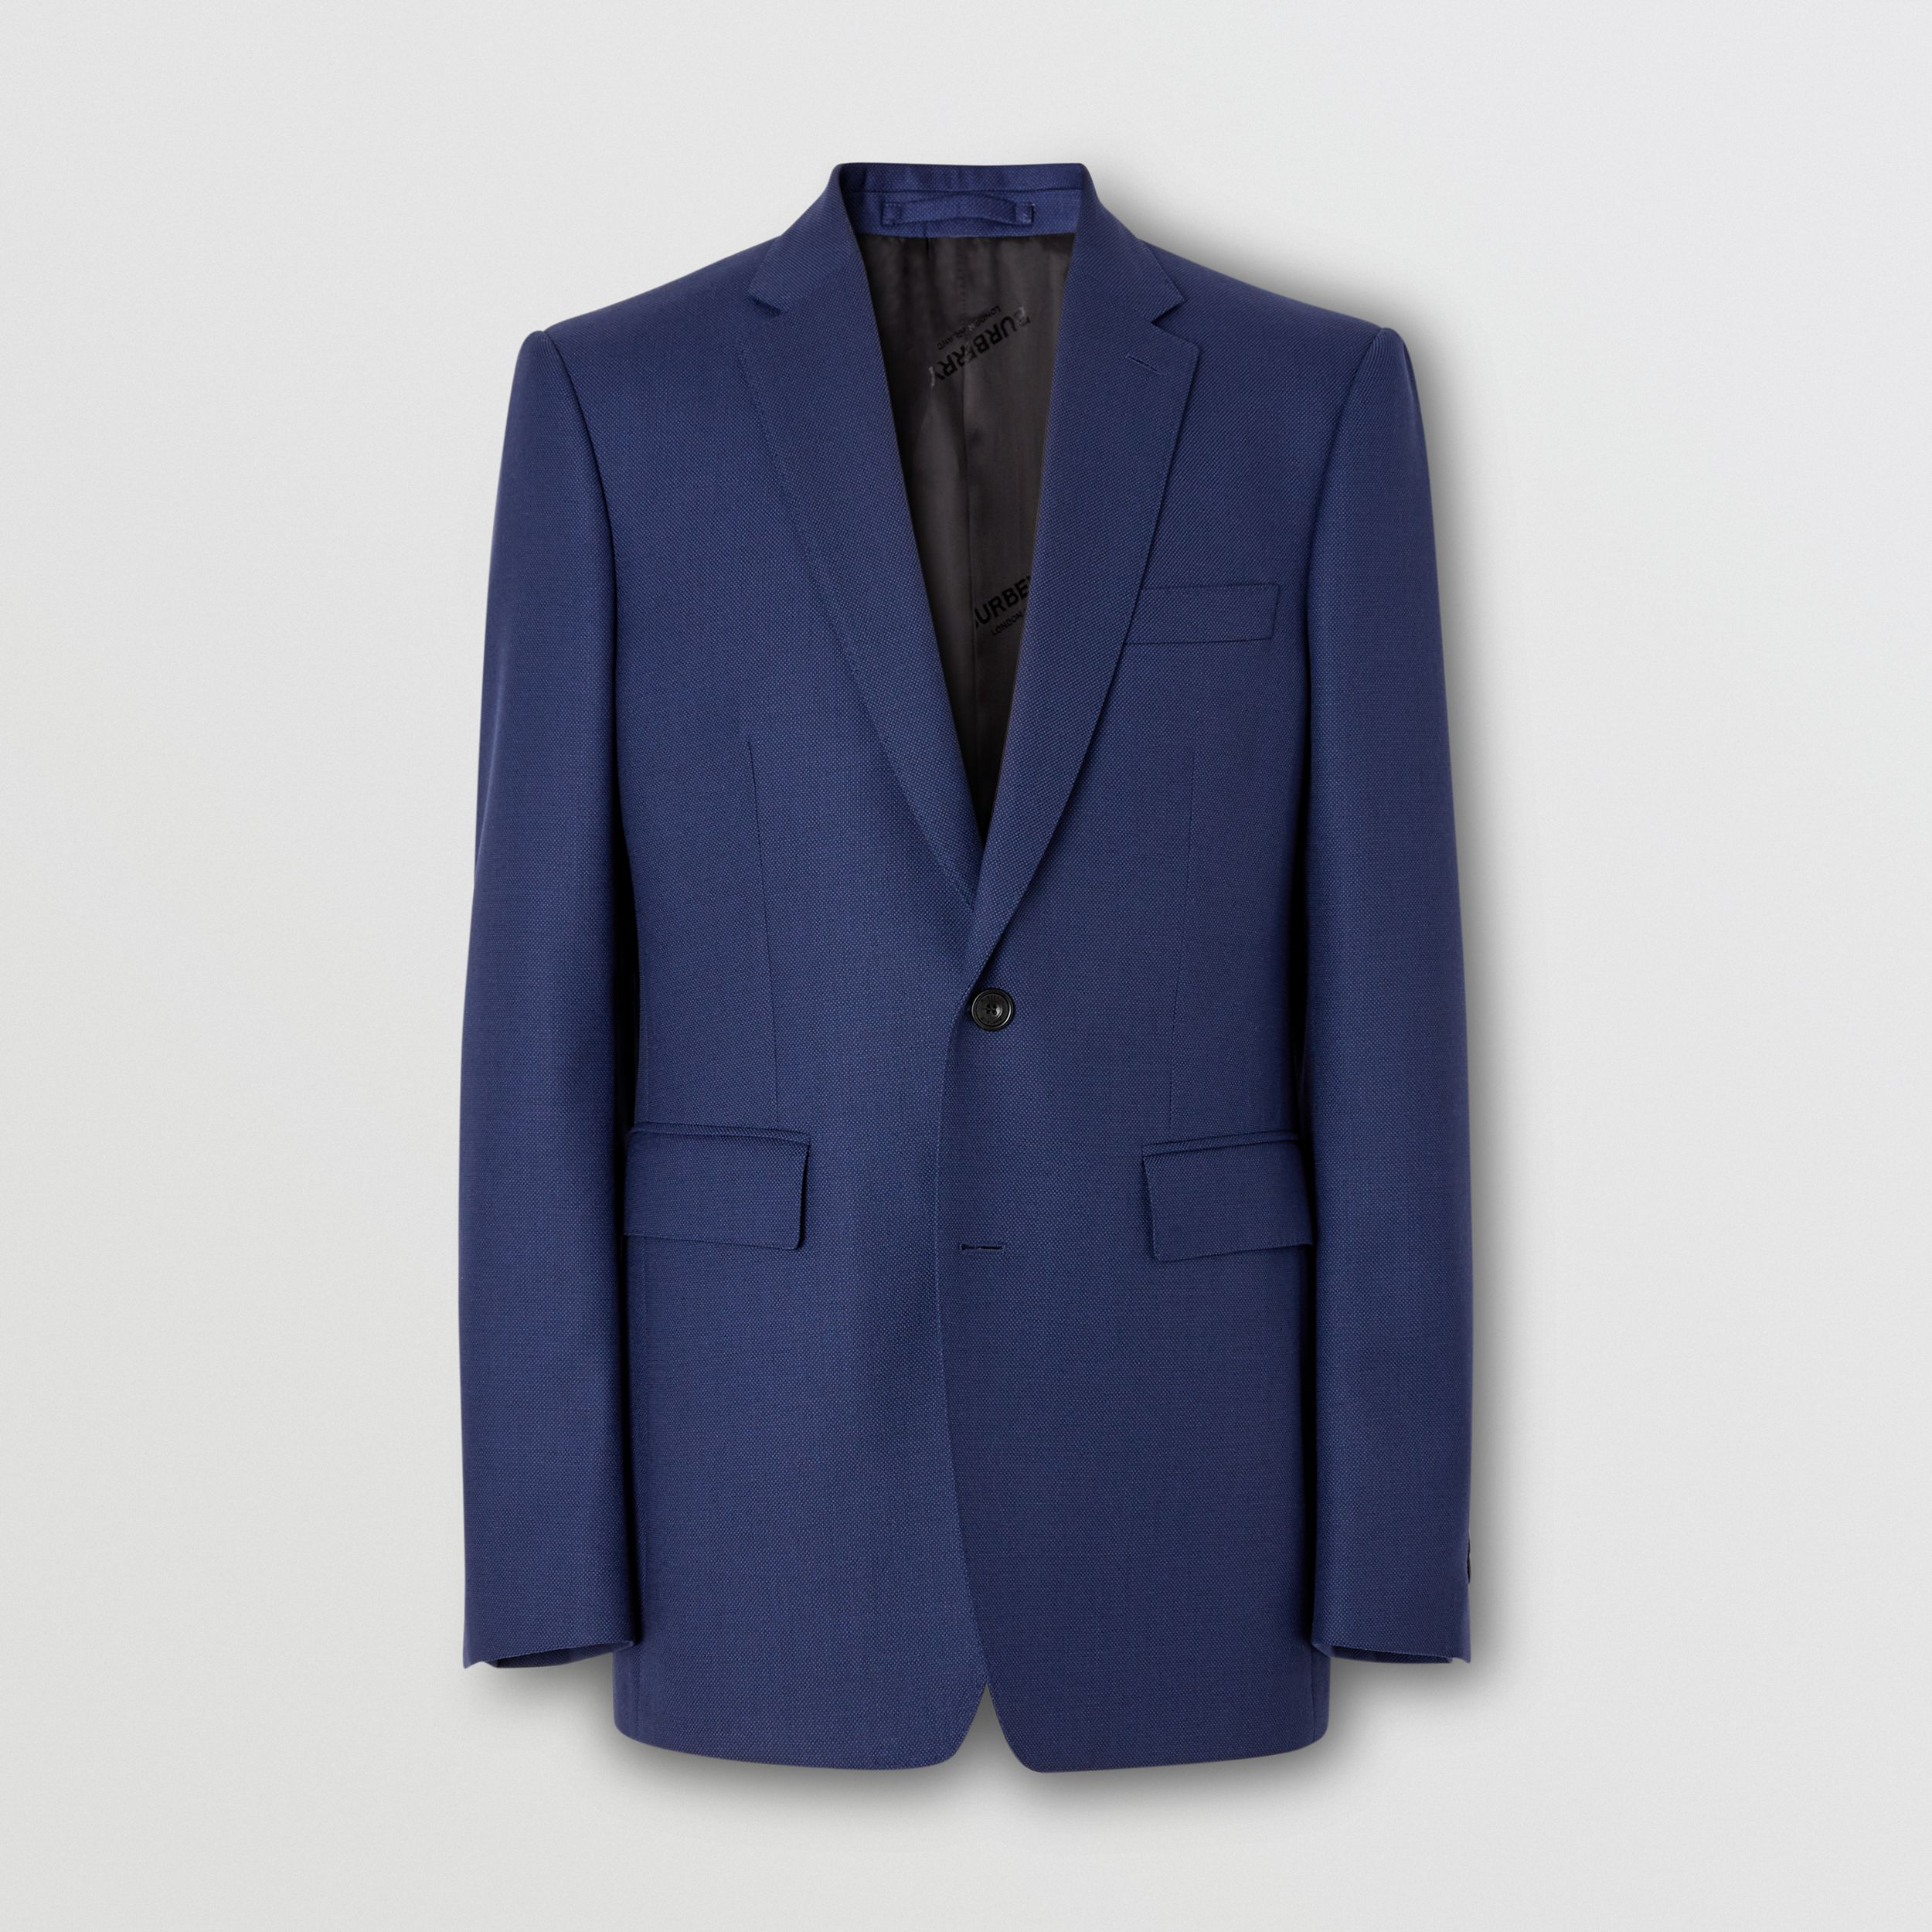 Classic Fit Birdseye Wool Tailored Jacket in Bright Navy - Men | Burberry - 4